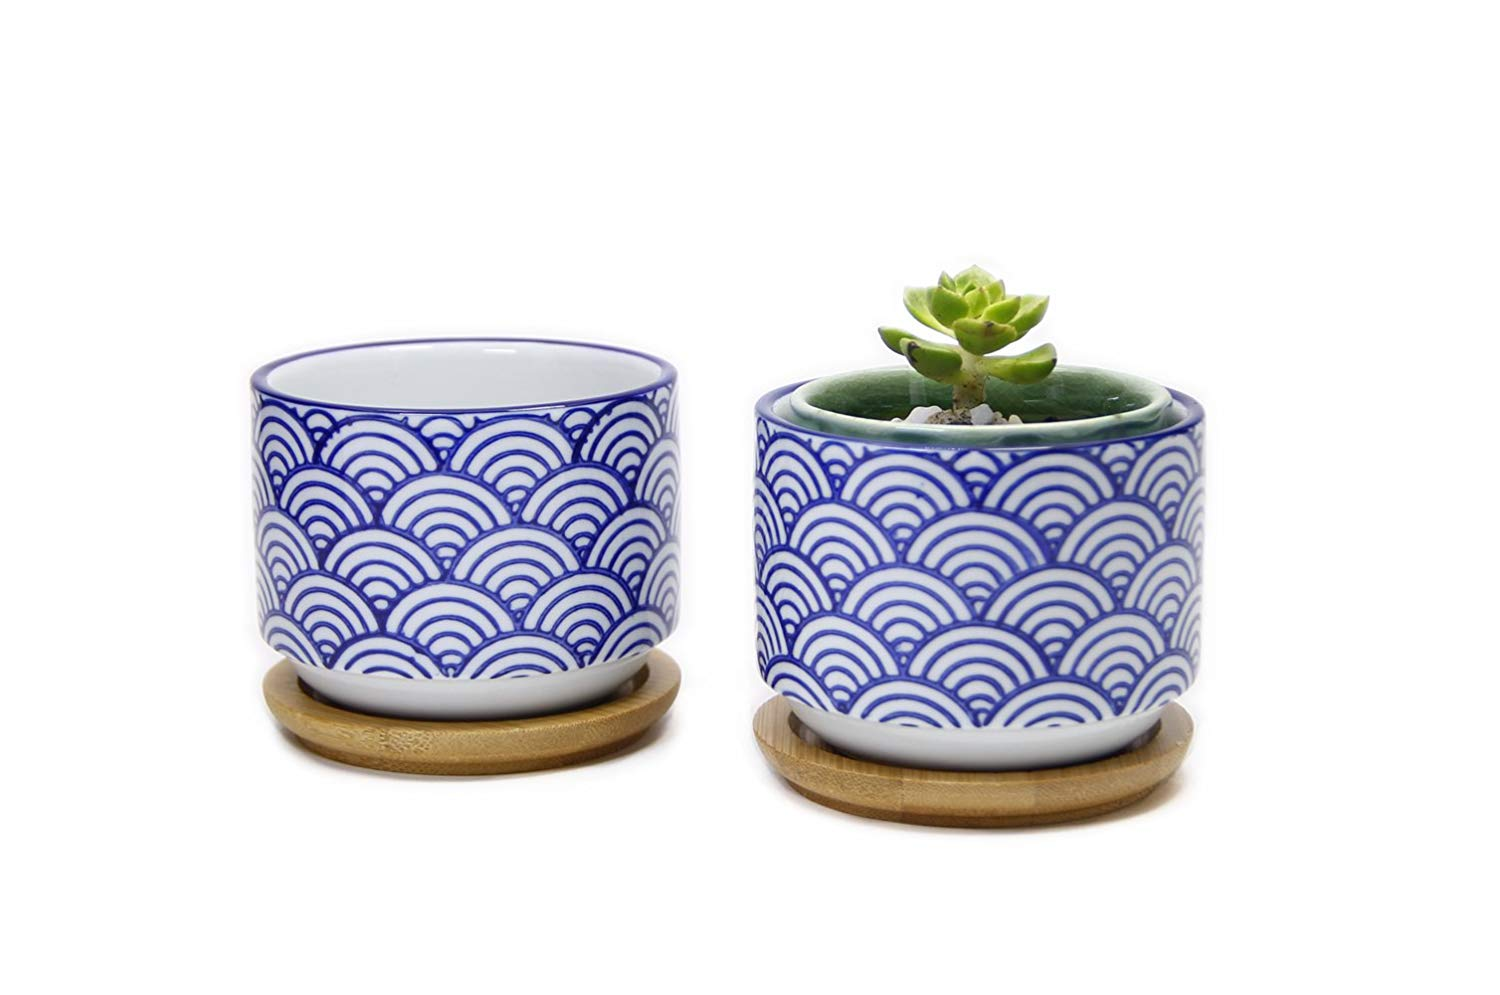 Goldblue Ceramic Small Succulent Pots 3.1Inch Japanese Style Succulent Planter Pots with Bamboo Drip Tray Pack of 2/Wave